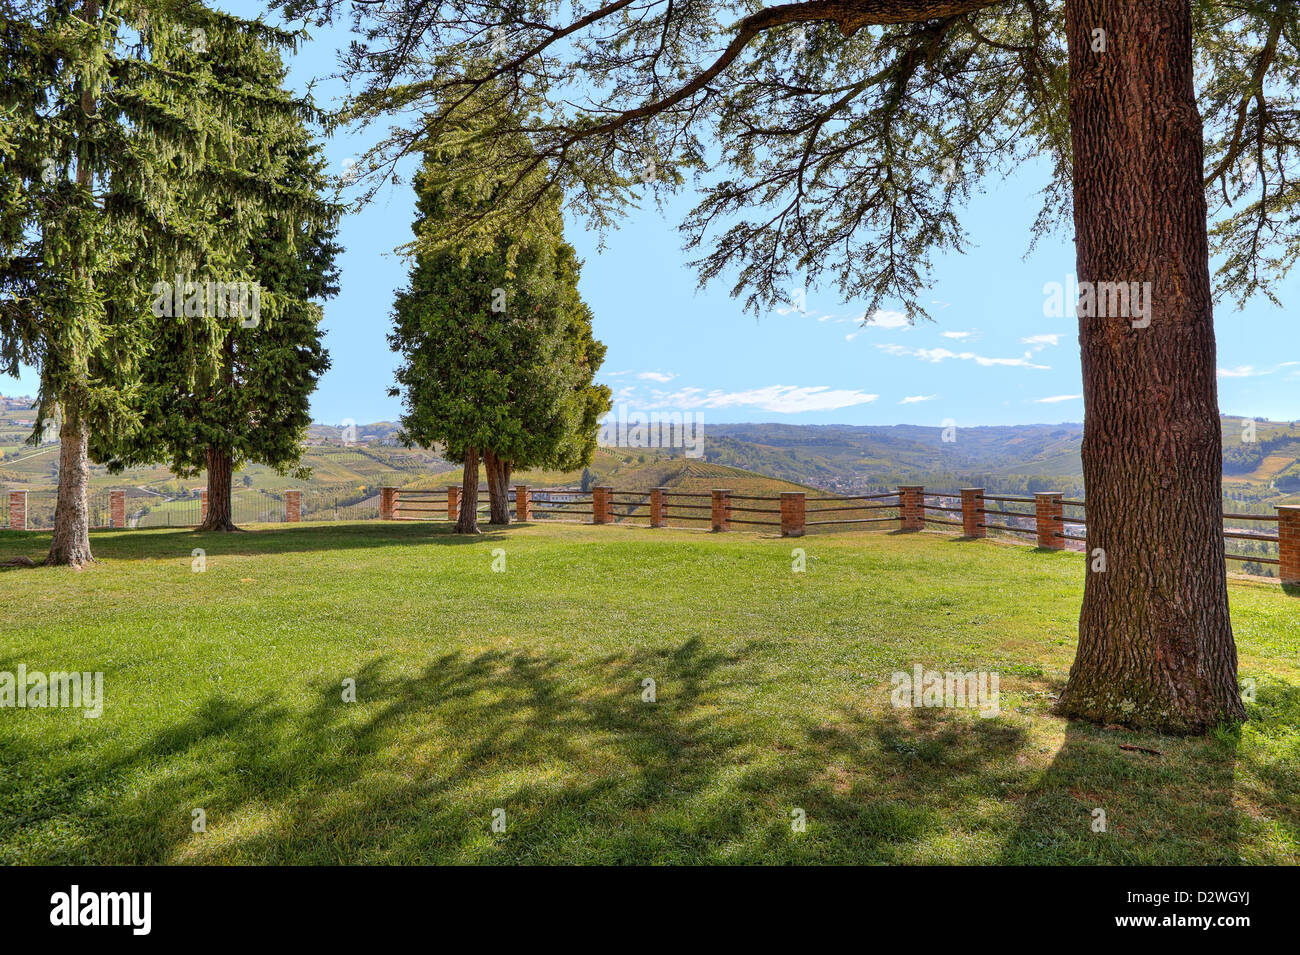 Trees on green lawn and hills on background under blue sky in Piedmont, Northern Italy. - Stock Image